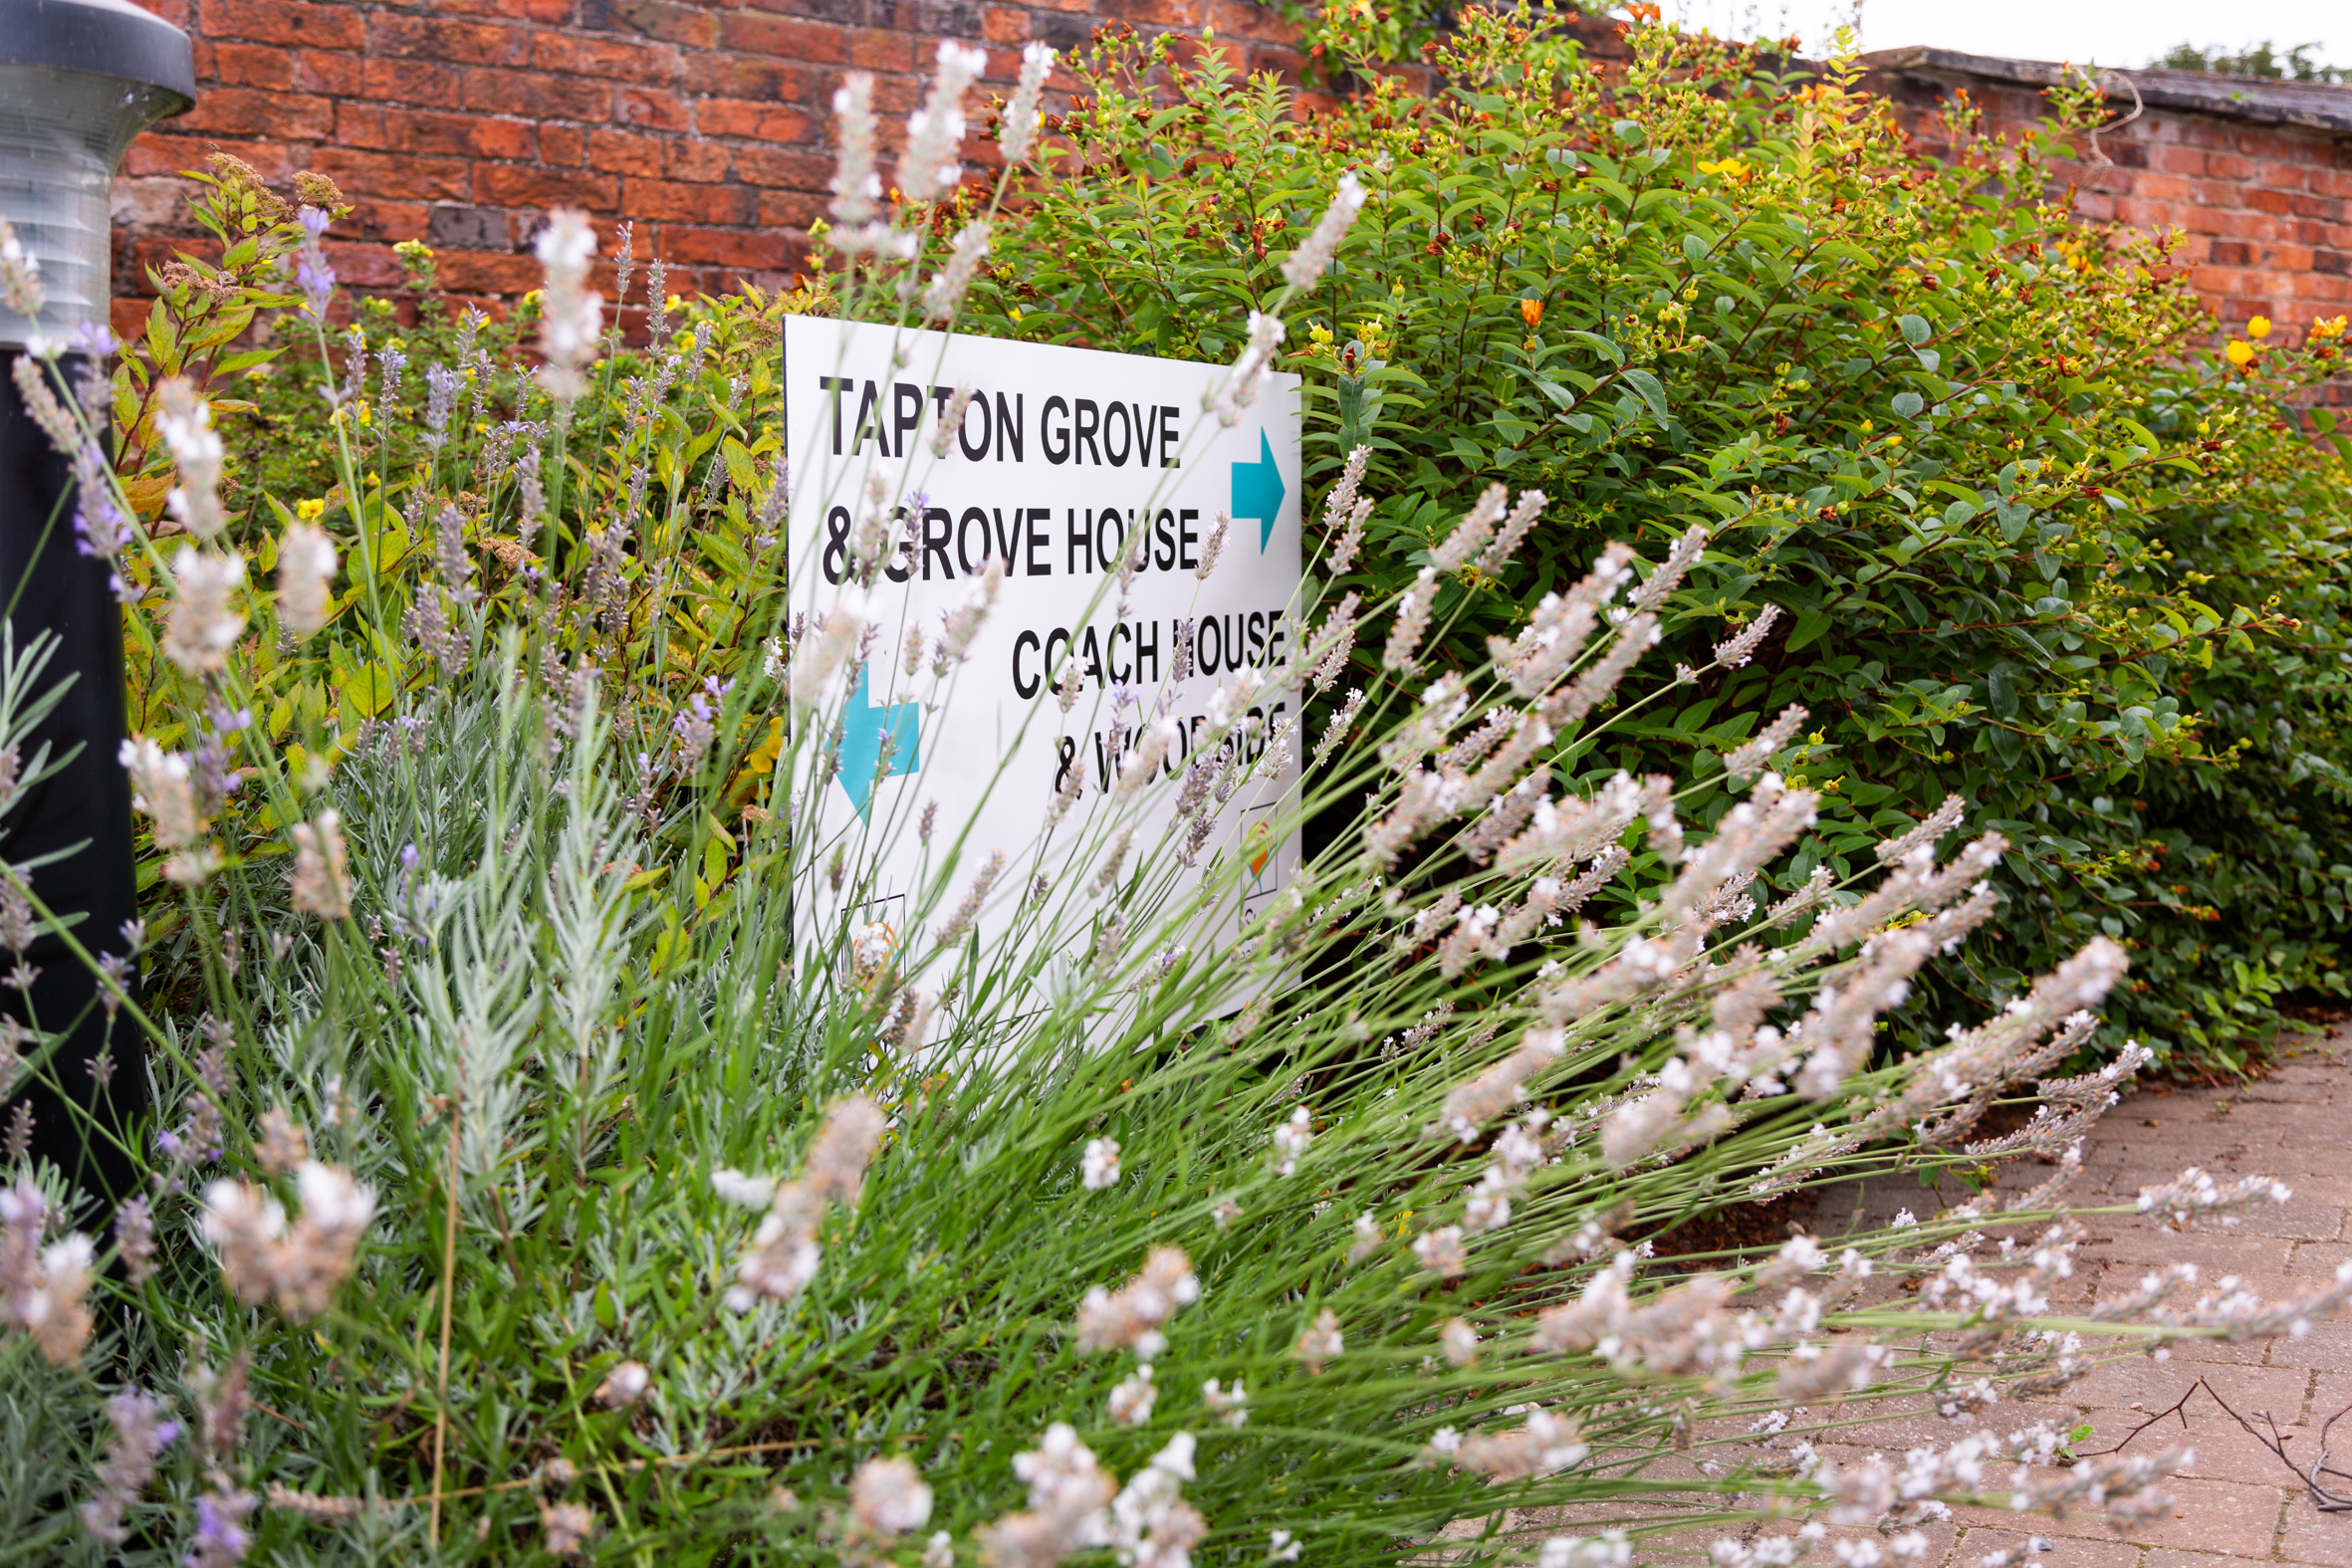 Tapton Grove sign, lavender